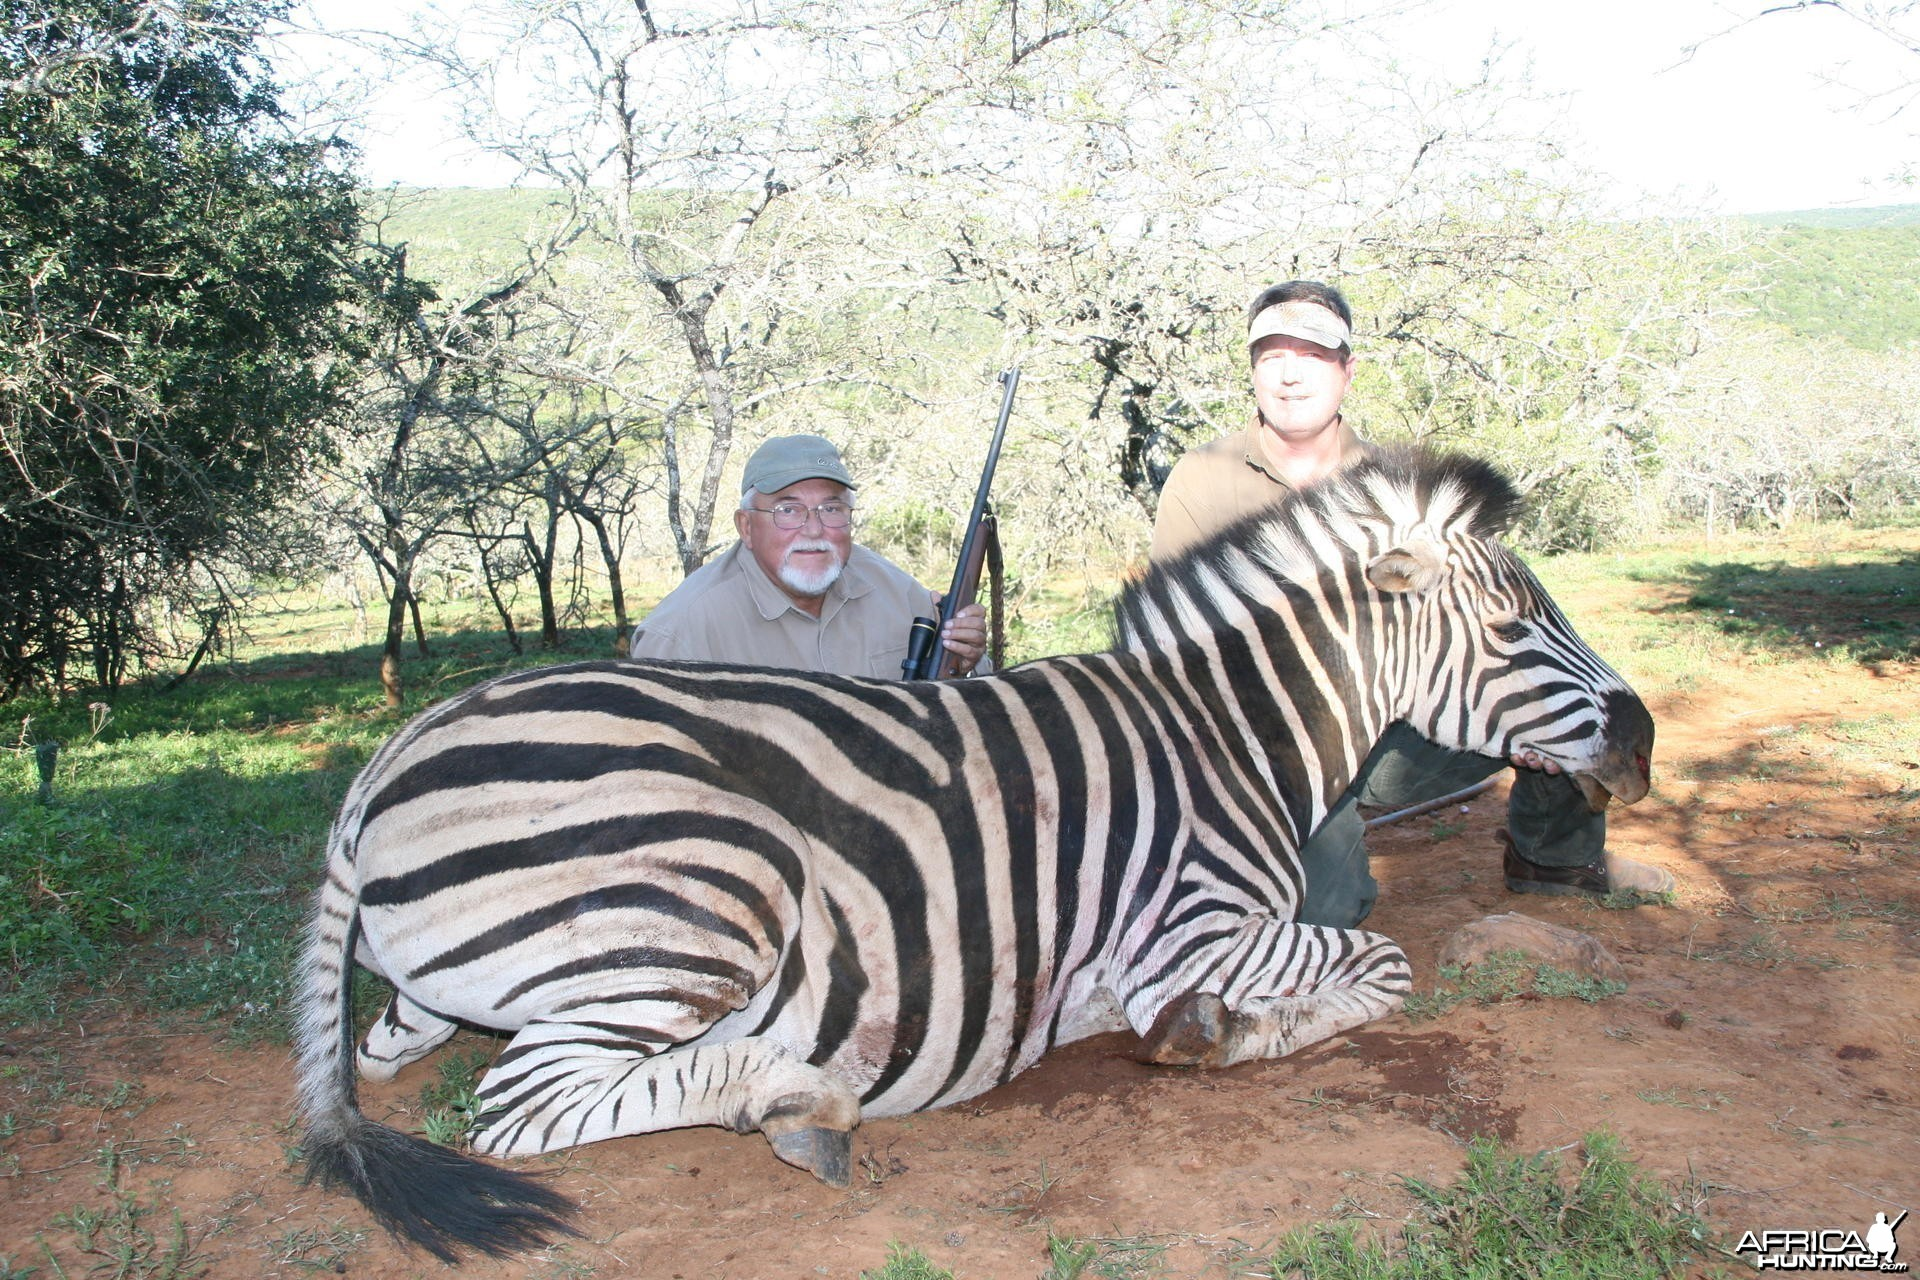 Zebra hunt in South Africa